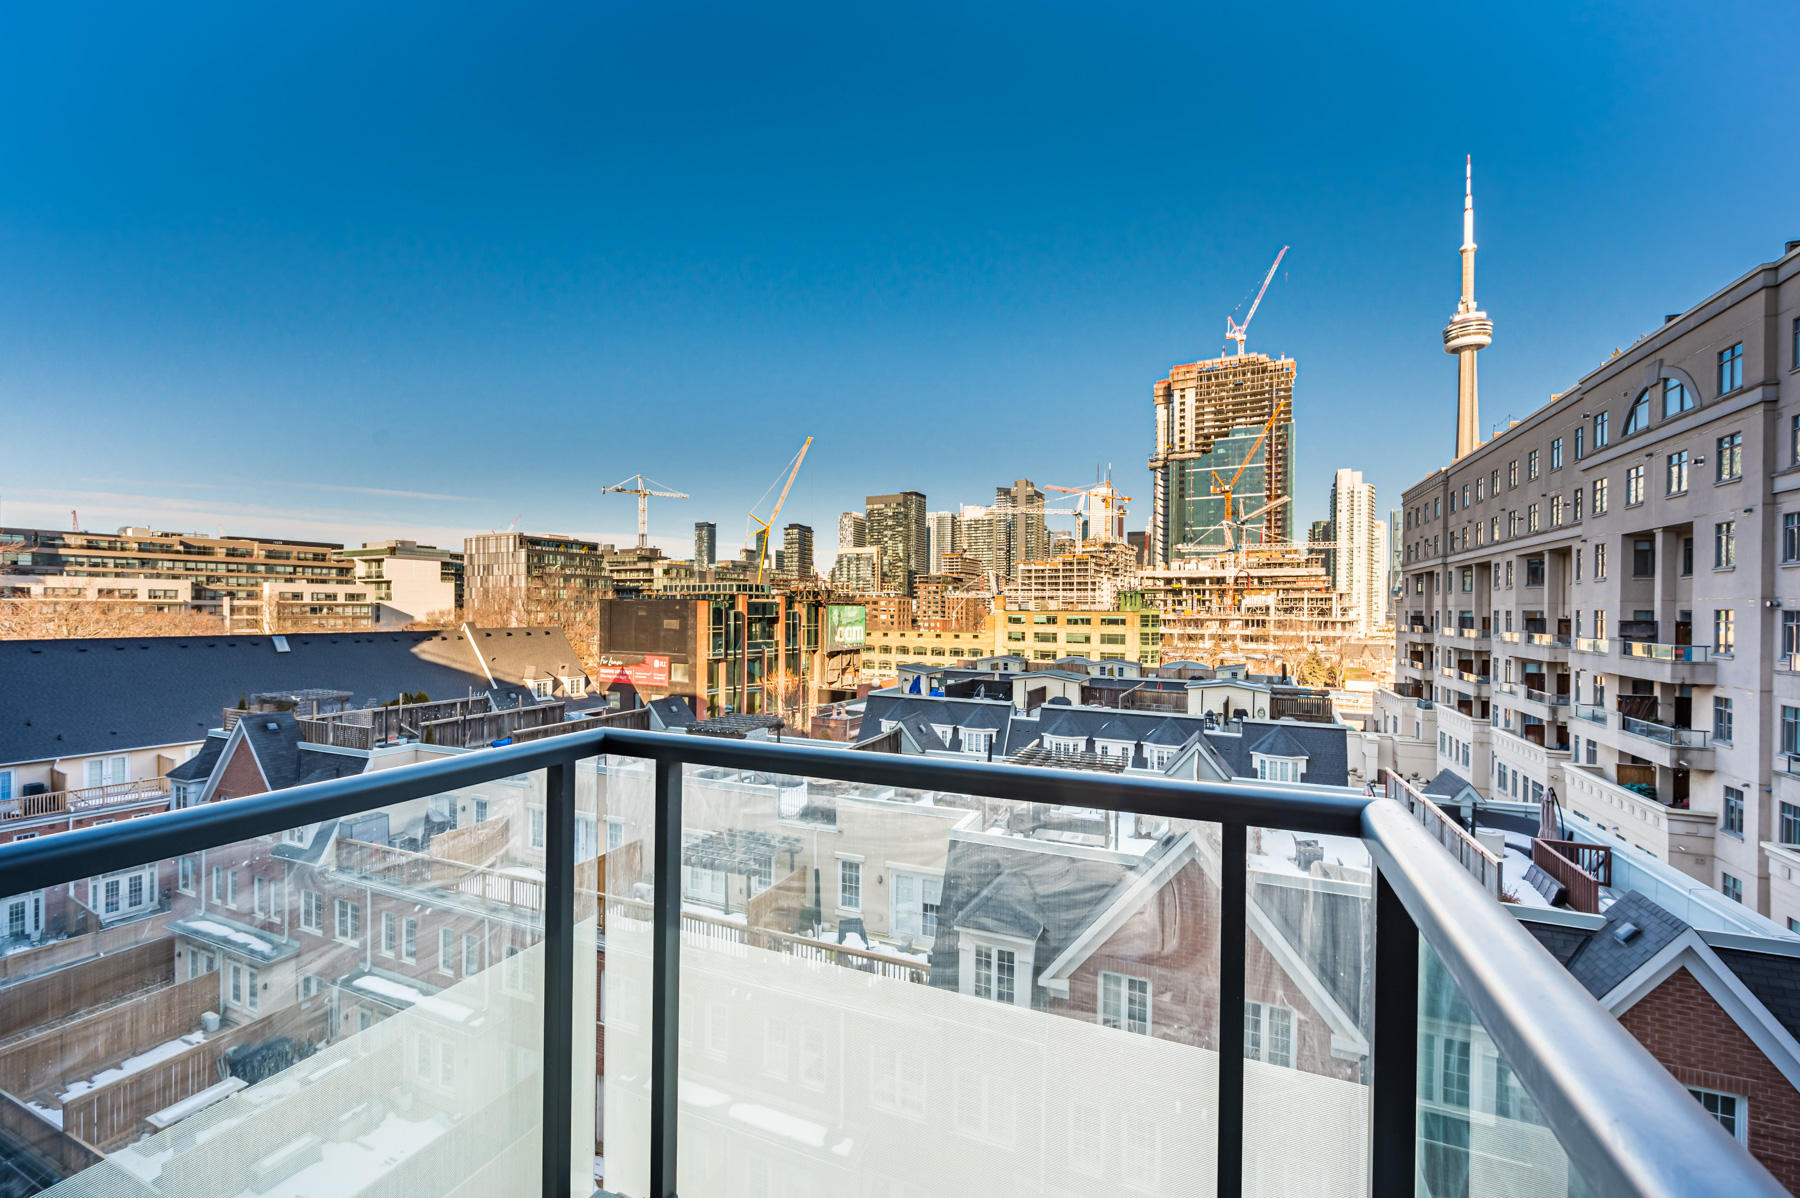 560 Front St W Unit 622 balcony with view of houses, condos and CN Tower in distance.